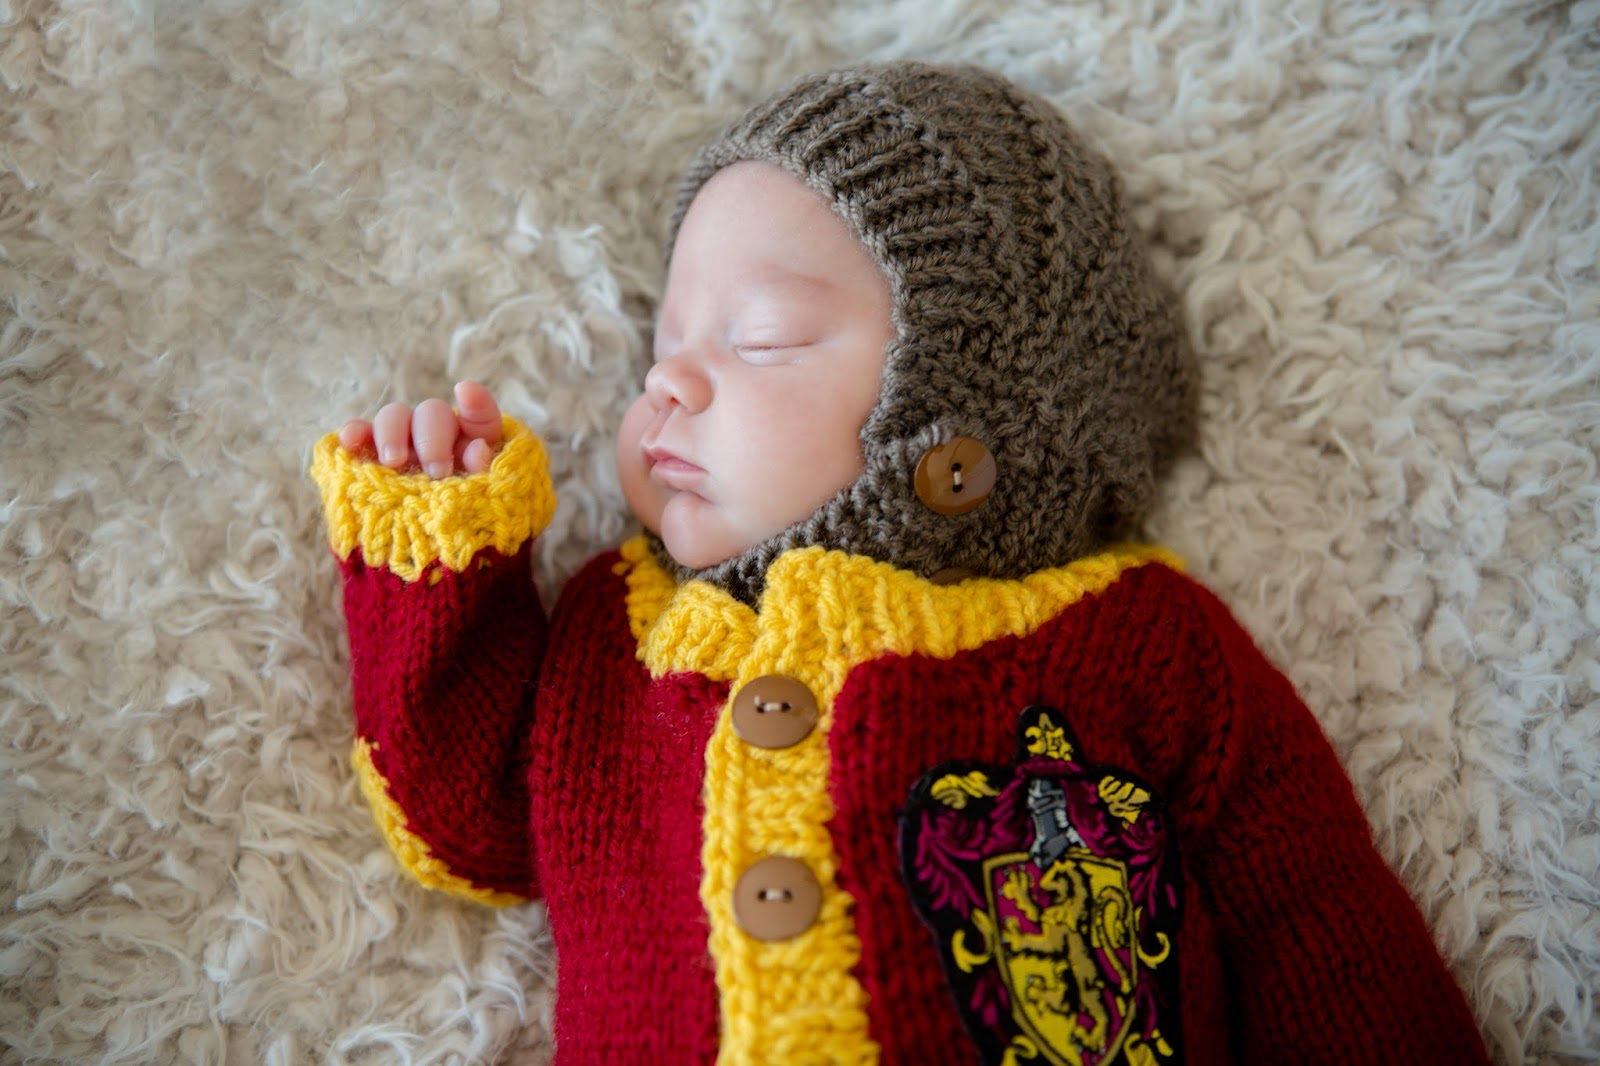 Harry Potter handmade outfit